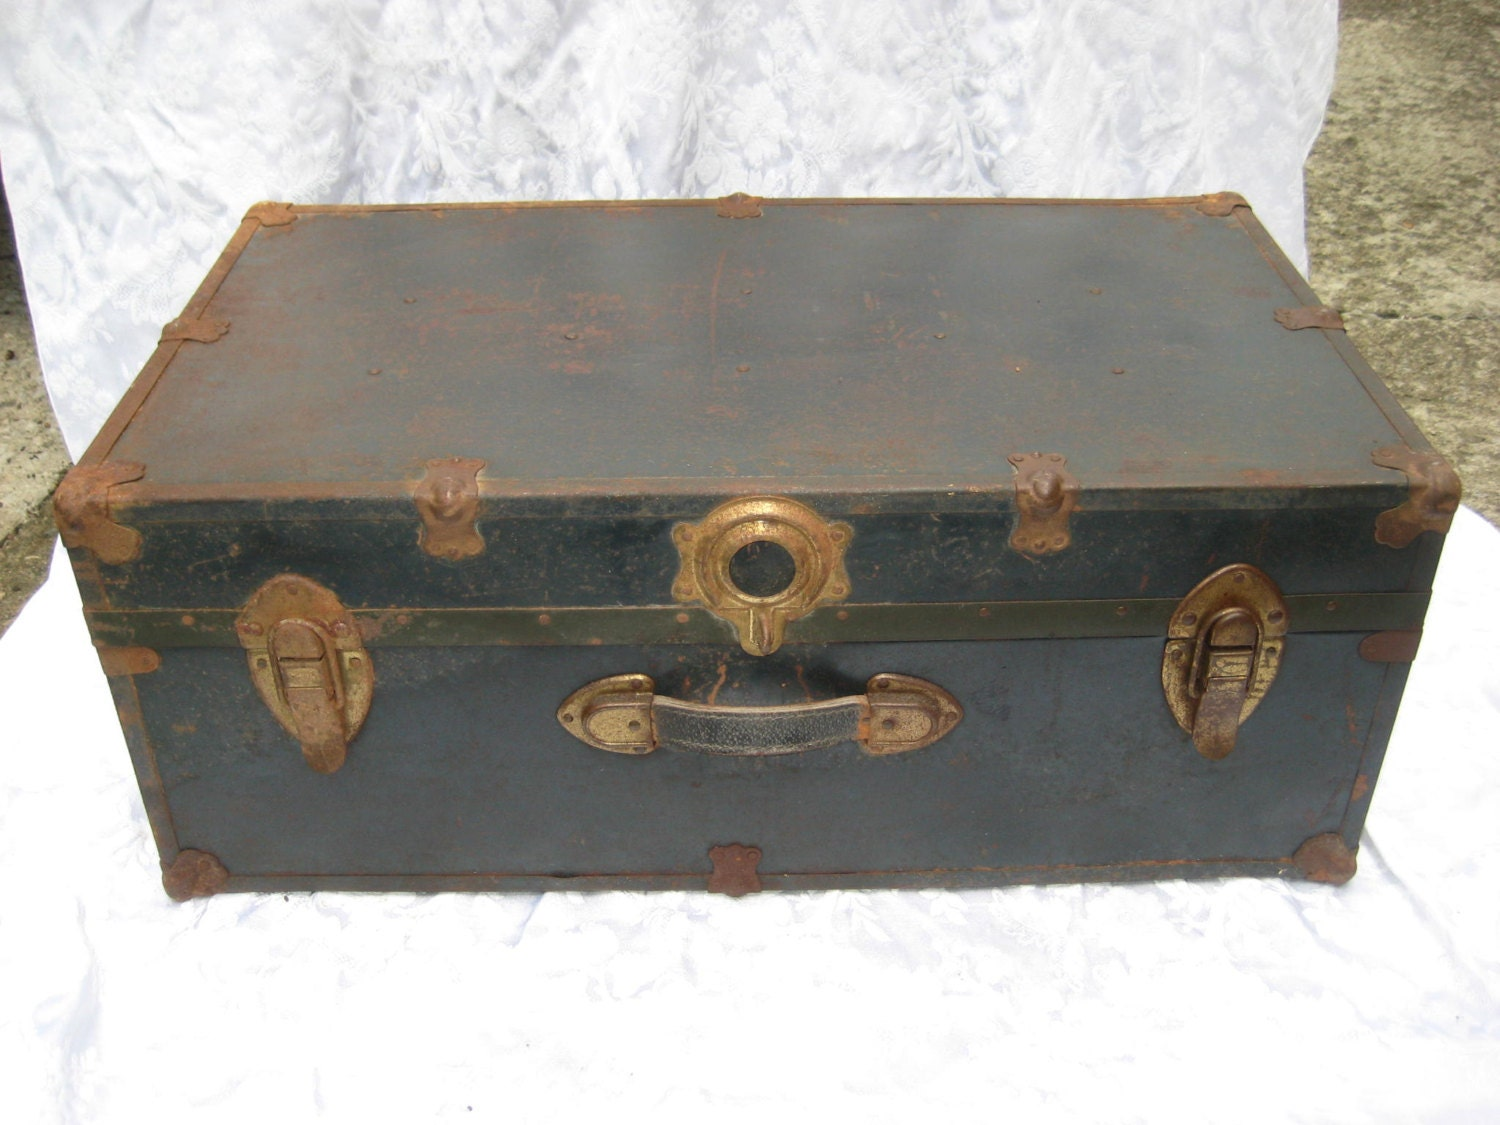 Vintage Rustic Trunk Foot Locker Metal Chest Coffee Table